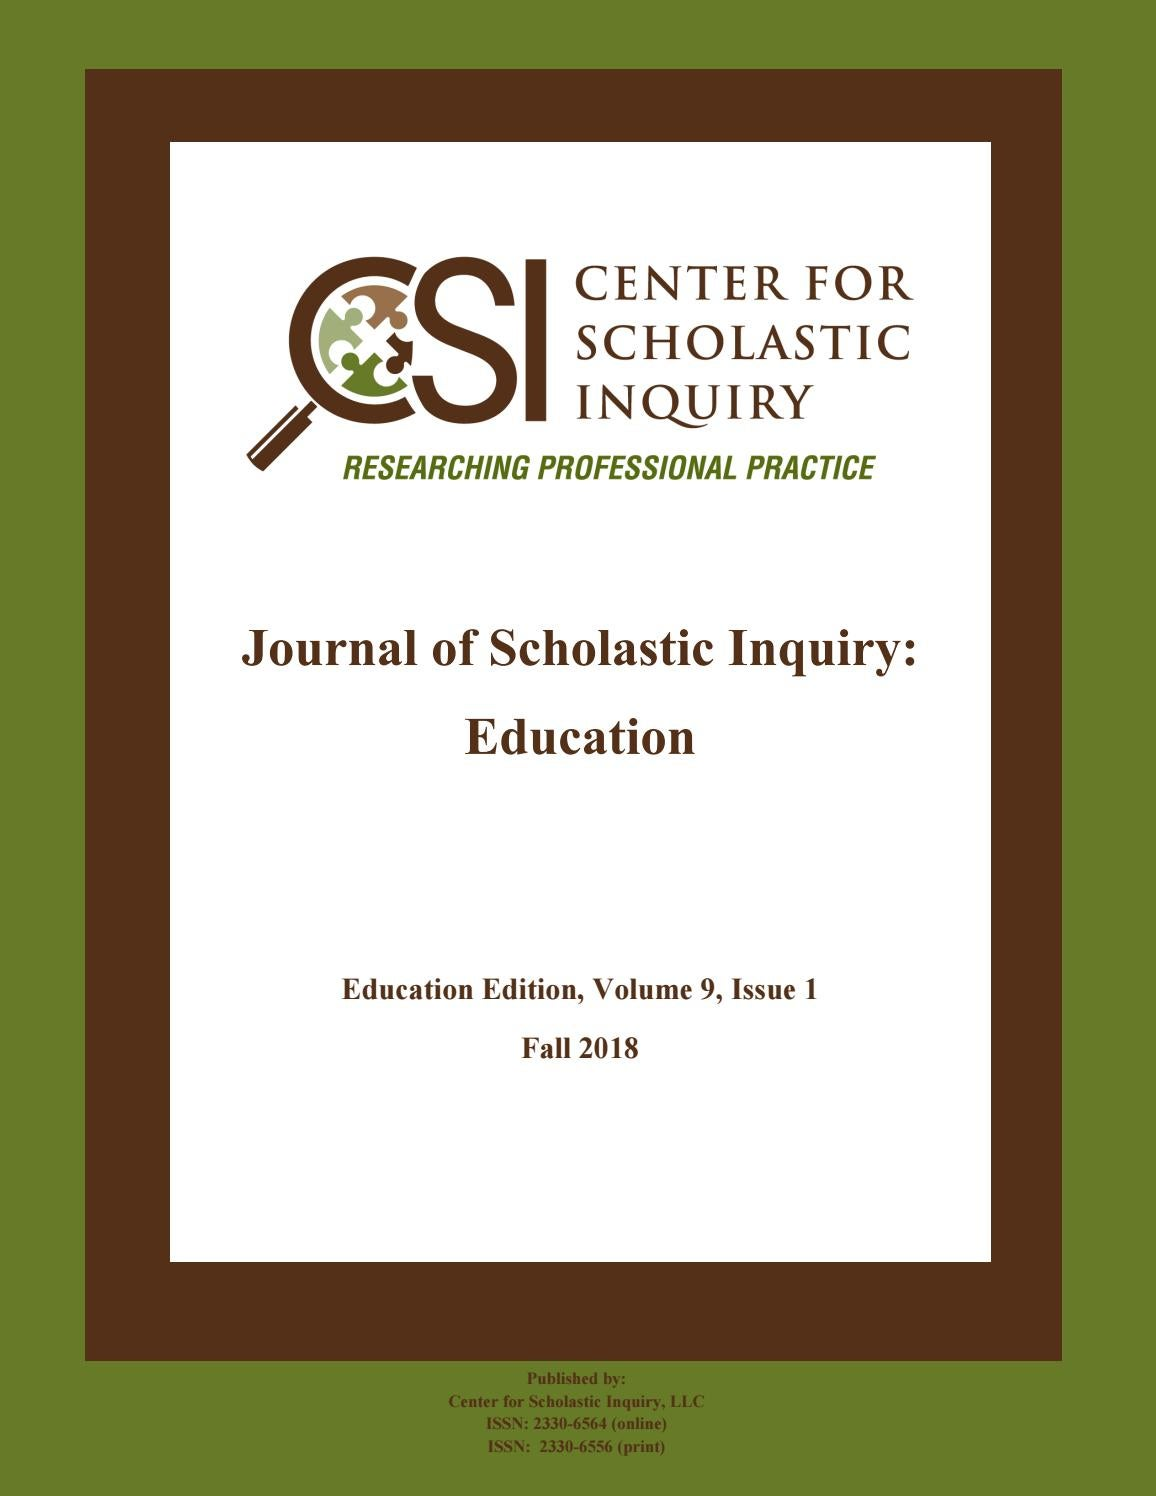 Journal of Scholastic Inquiry: Education, Fall 2018 by